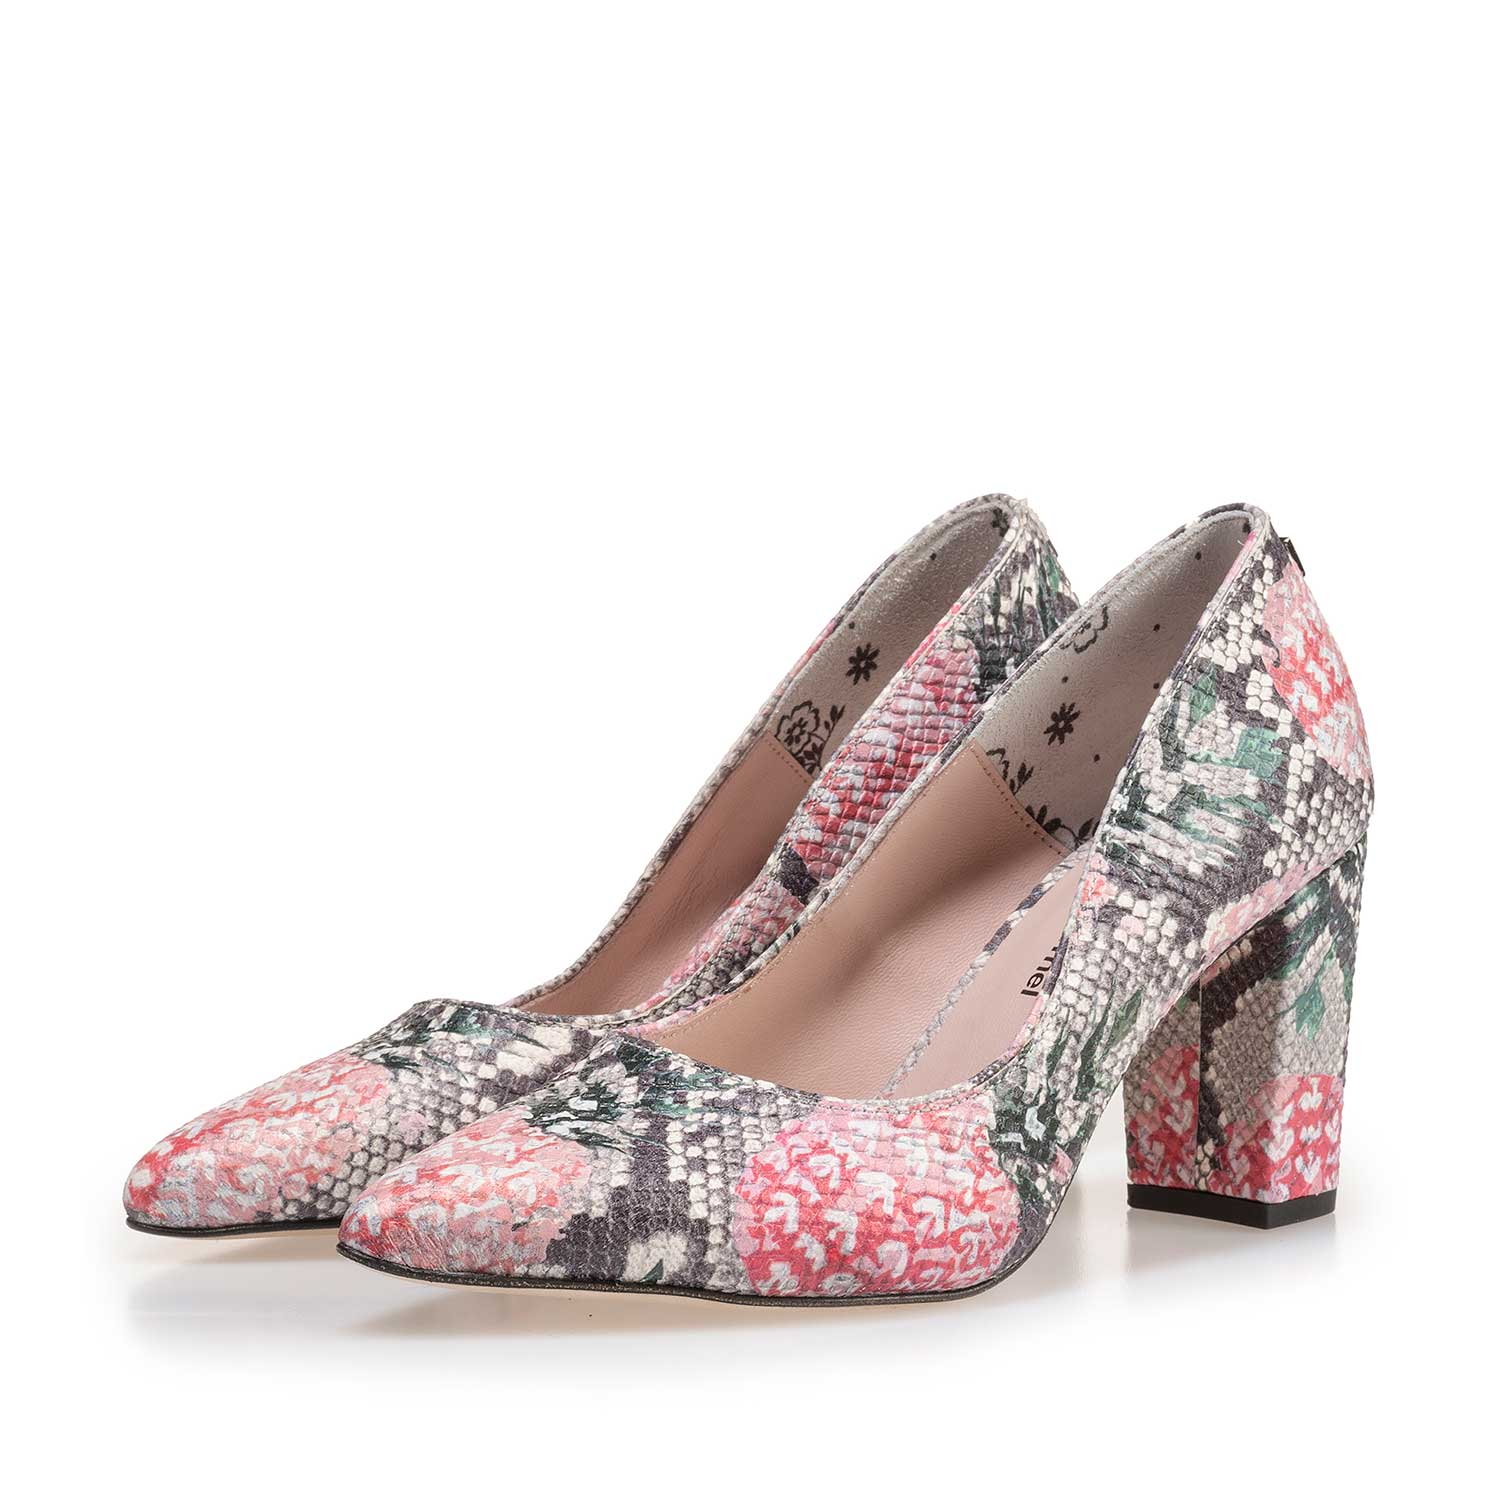 85227/02 - Multi-coloured leather pumps with printed motif